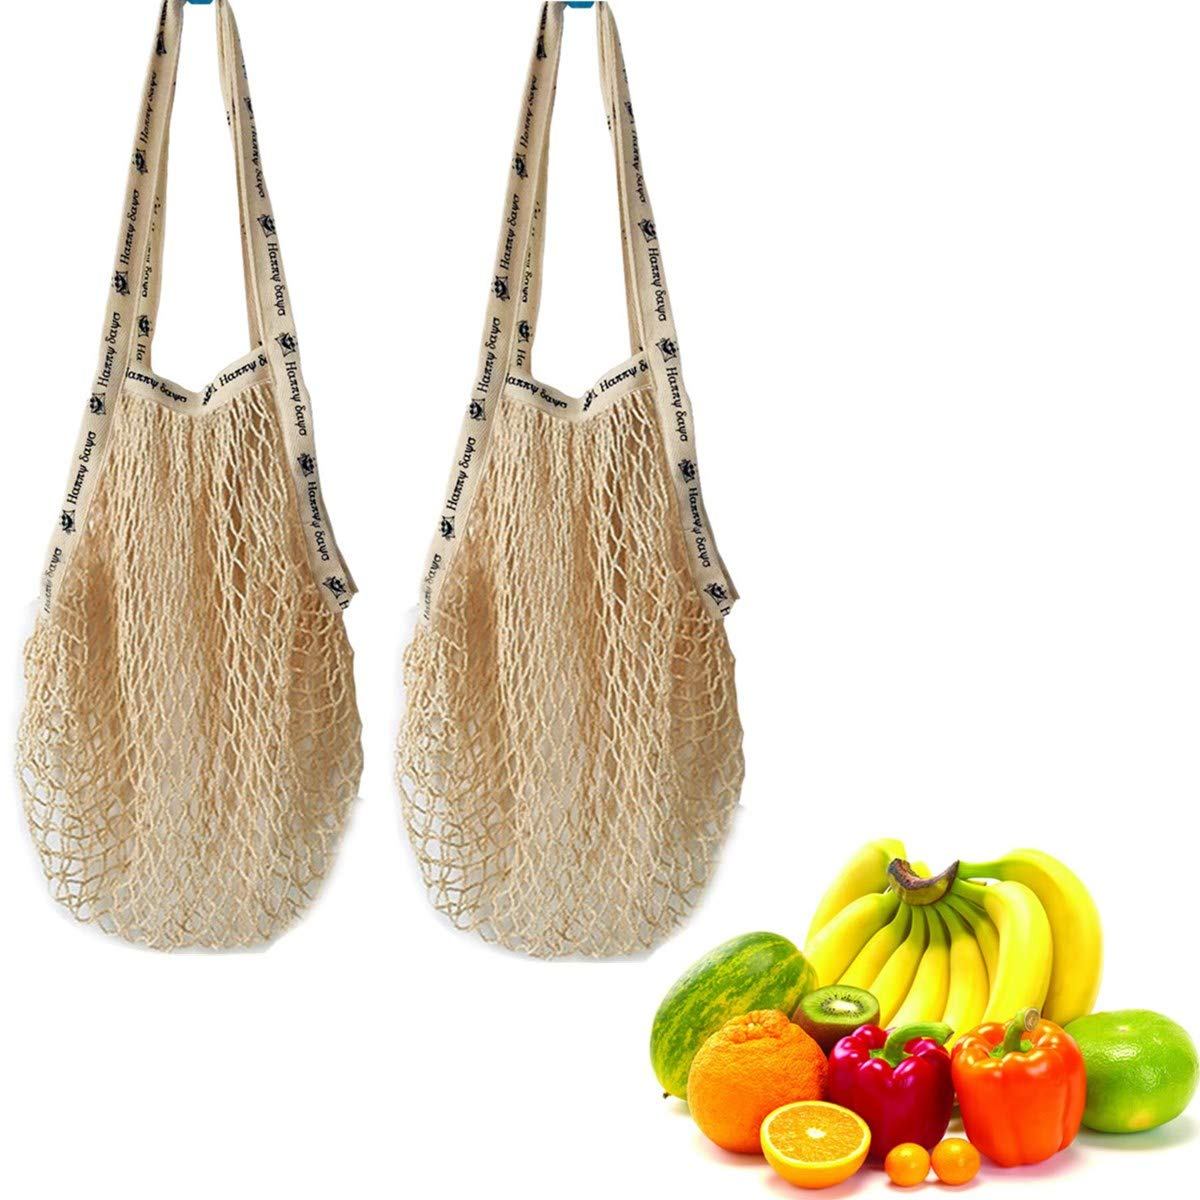 Natural Cotton Mesh Reusable Grocery Bags Net Shopping Bag Ecology Produce Bag Set of 2 (Beige_Long Handle with Silk Screen) by LLygezze (Image #1)